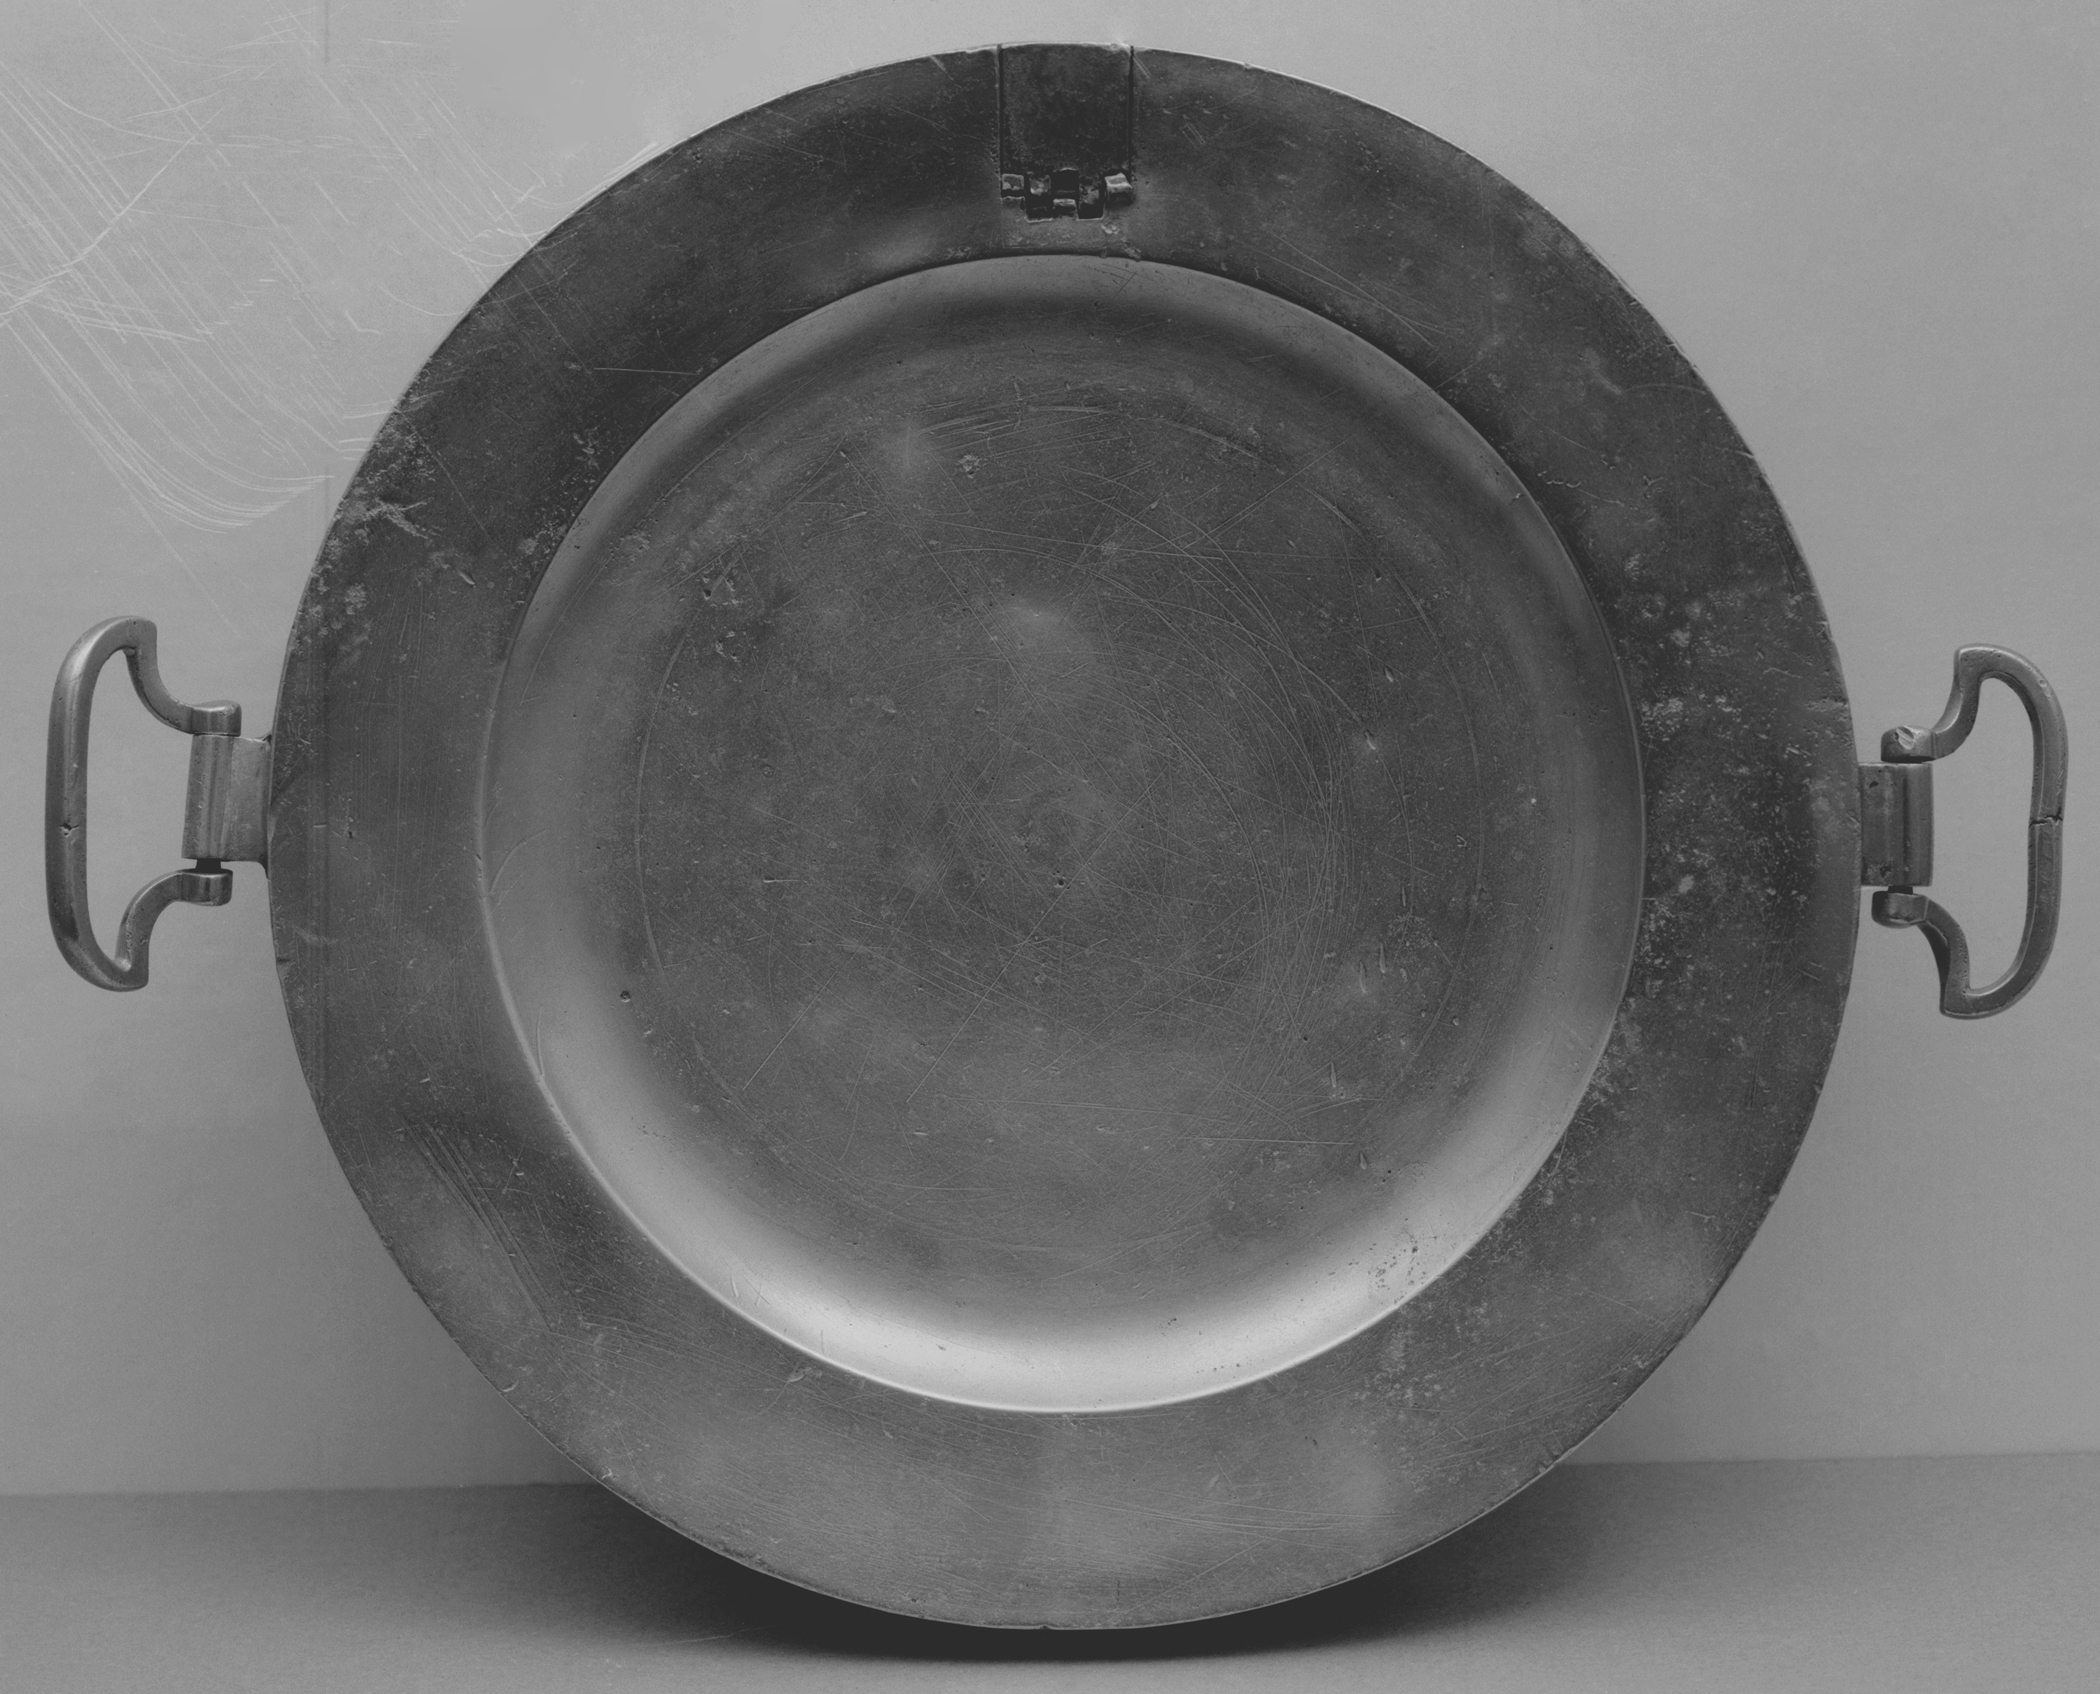 1954.0097.002 Pewter hot water plate